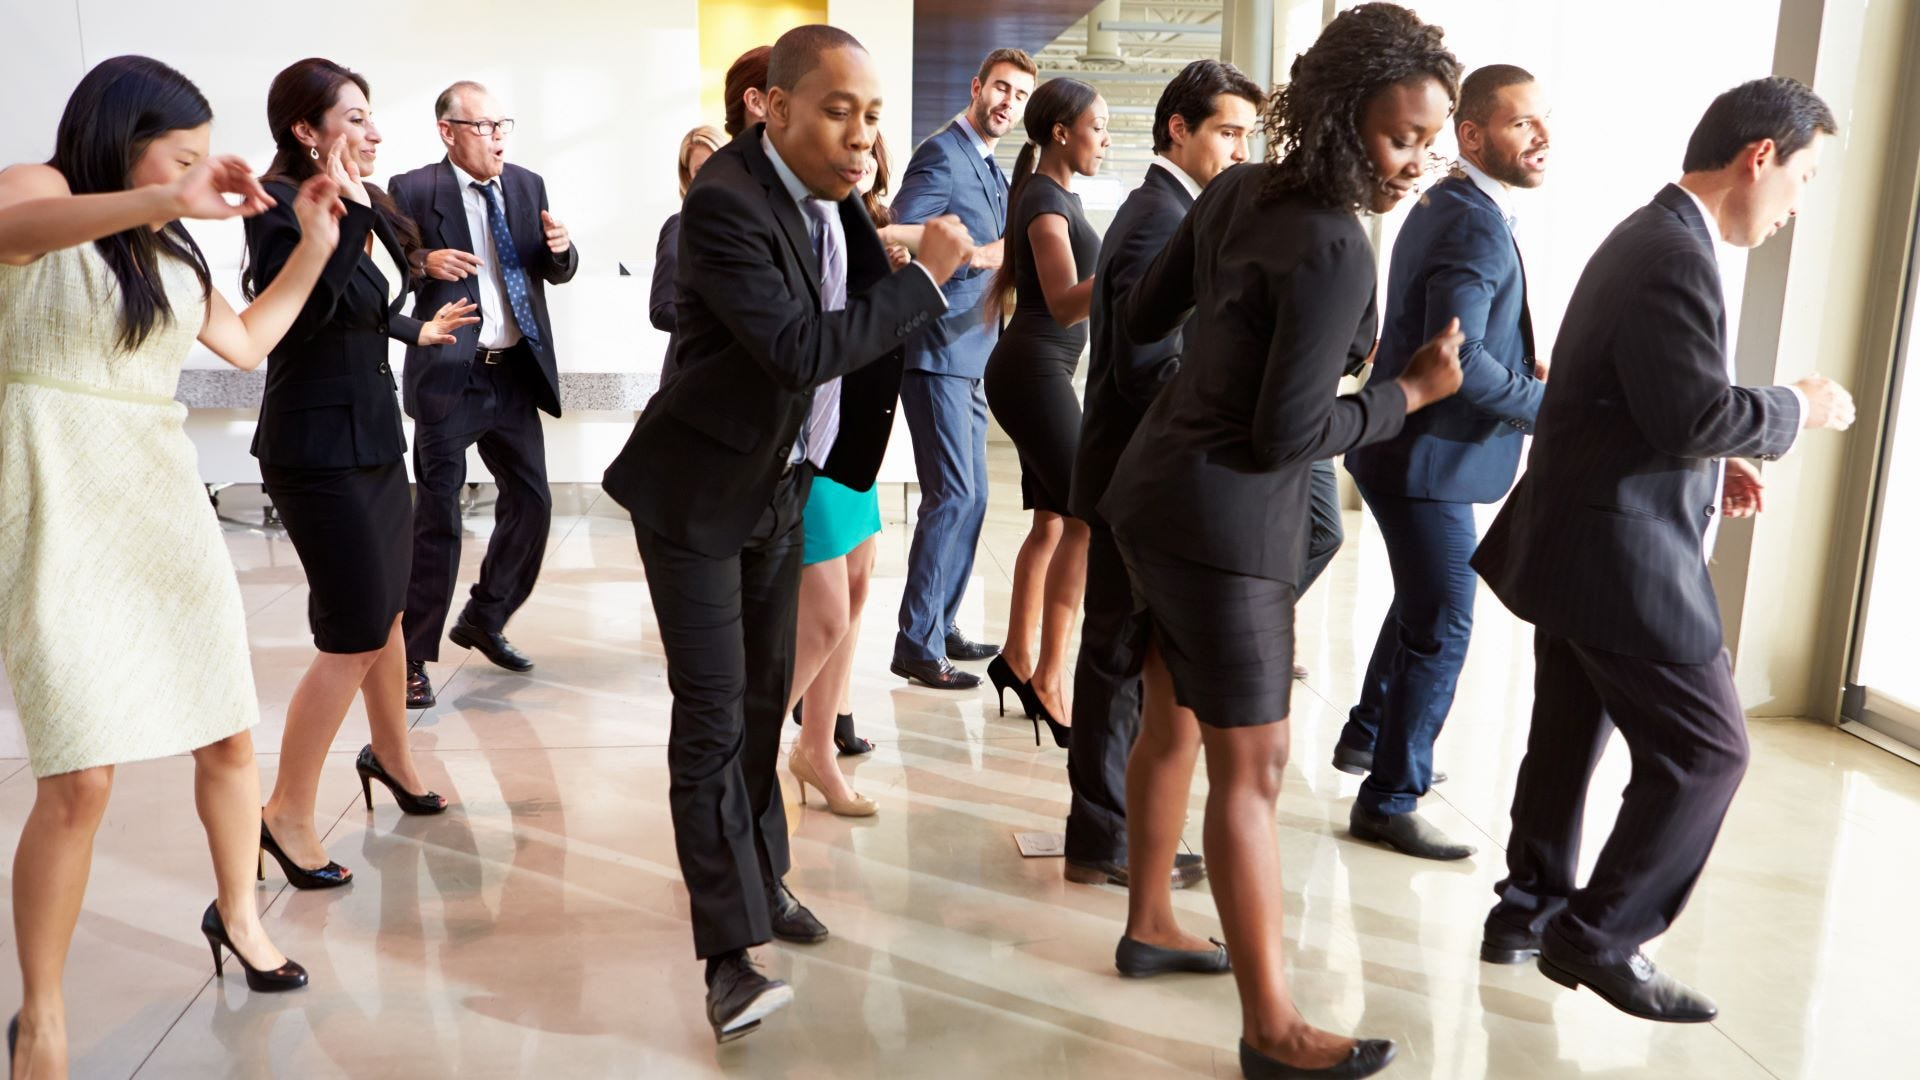 A group of people line dancing at an office.